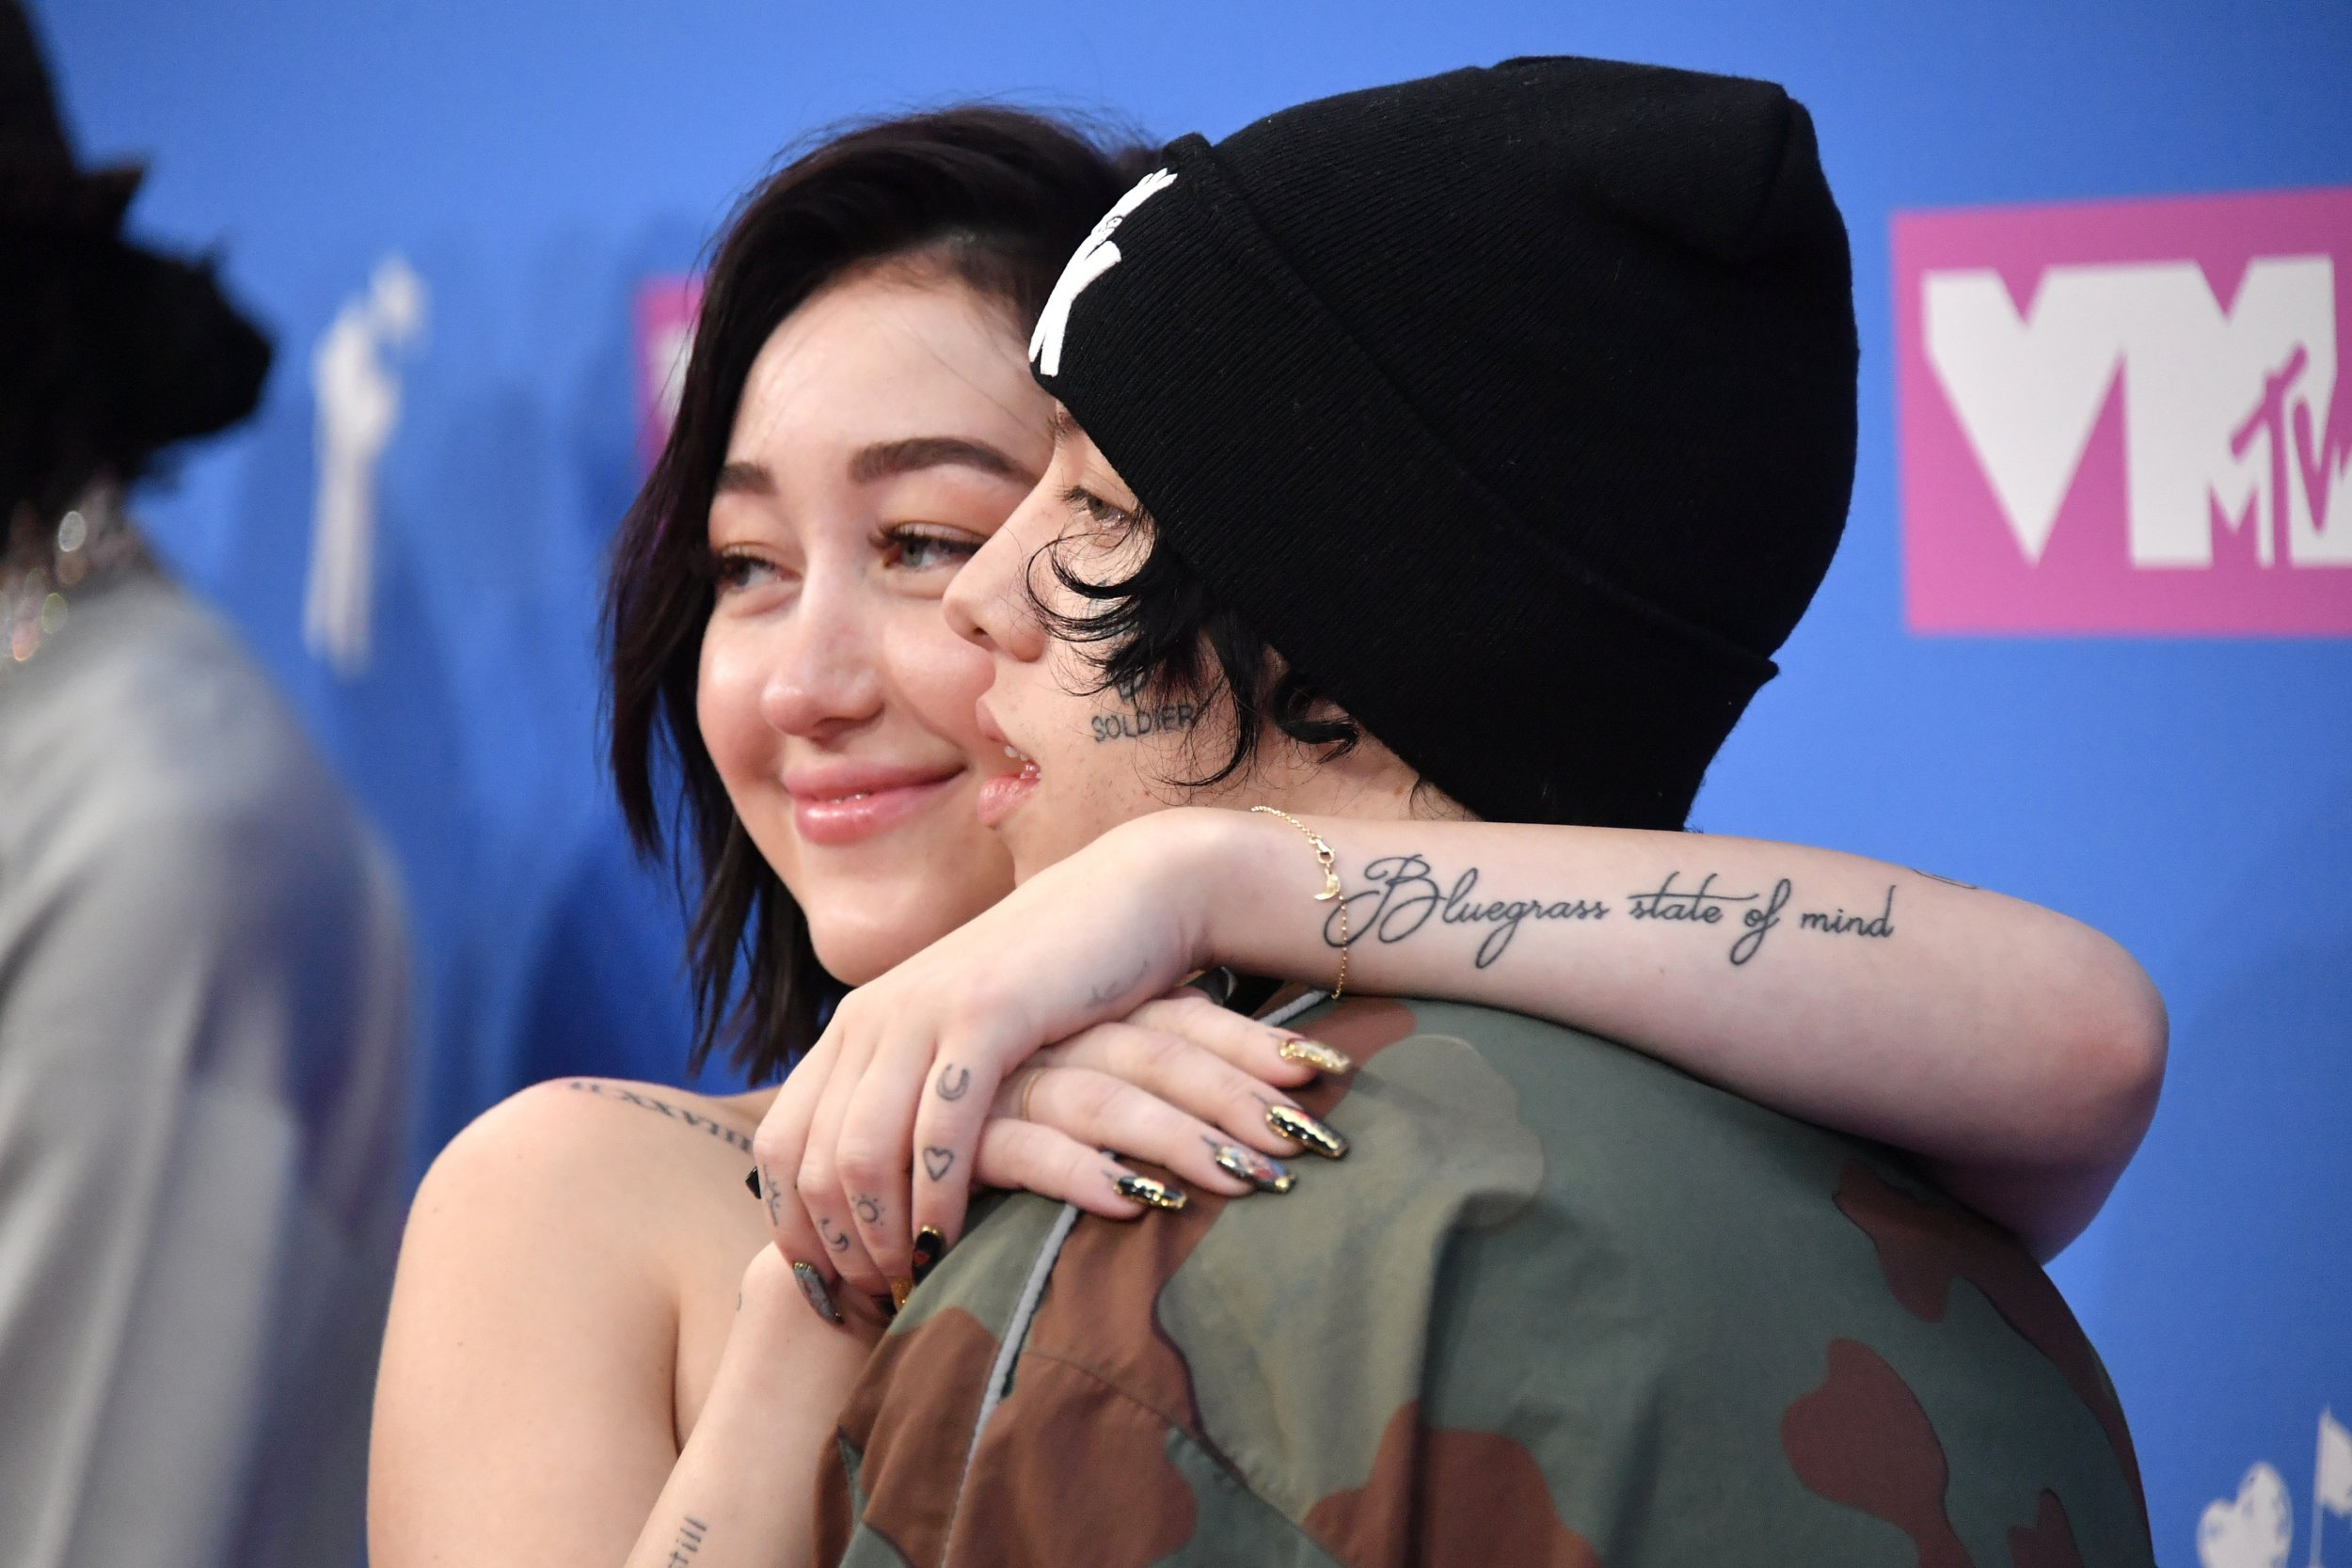 Noah Cyrus Accuses Boyfriend Lil Xan Of Cheating In Candid Instagram Story-4846